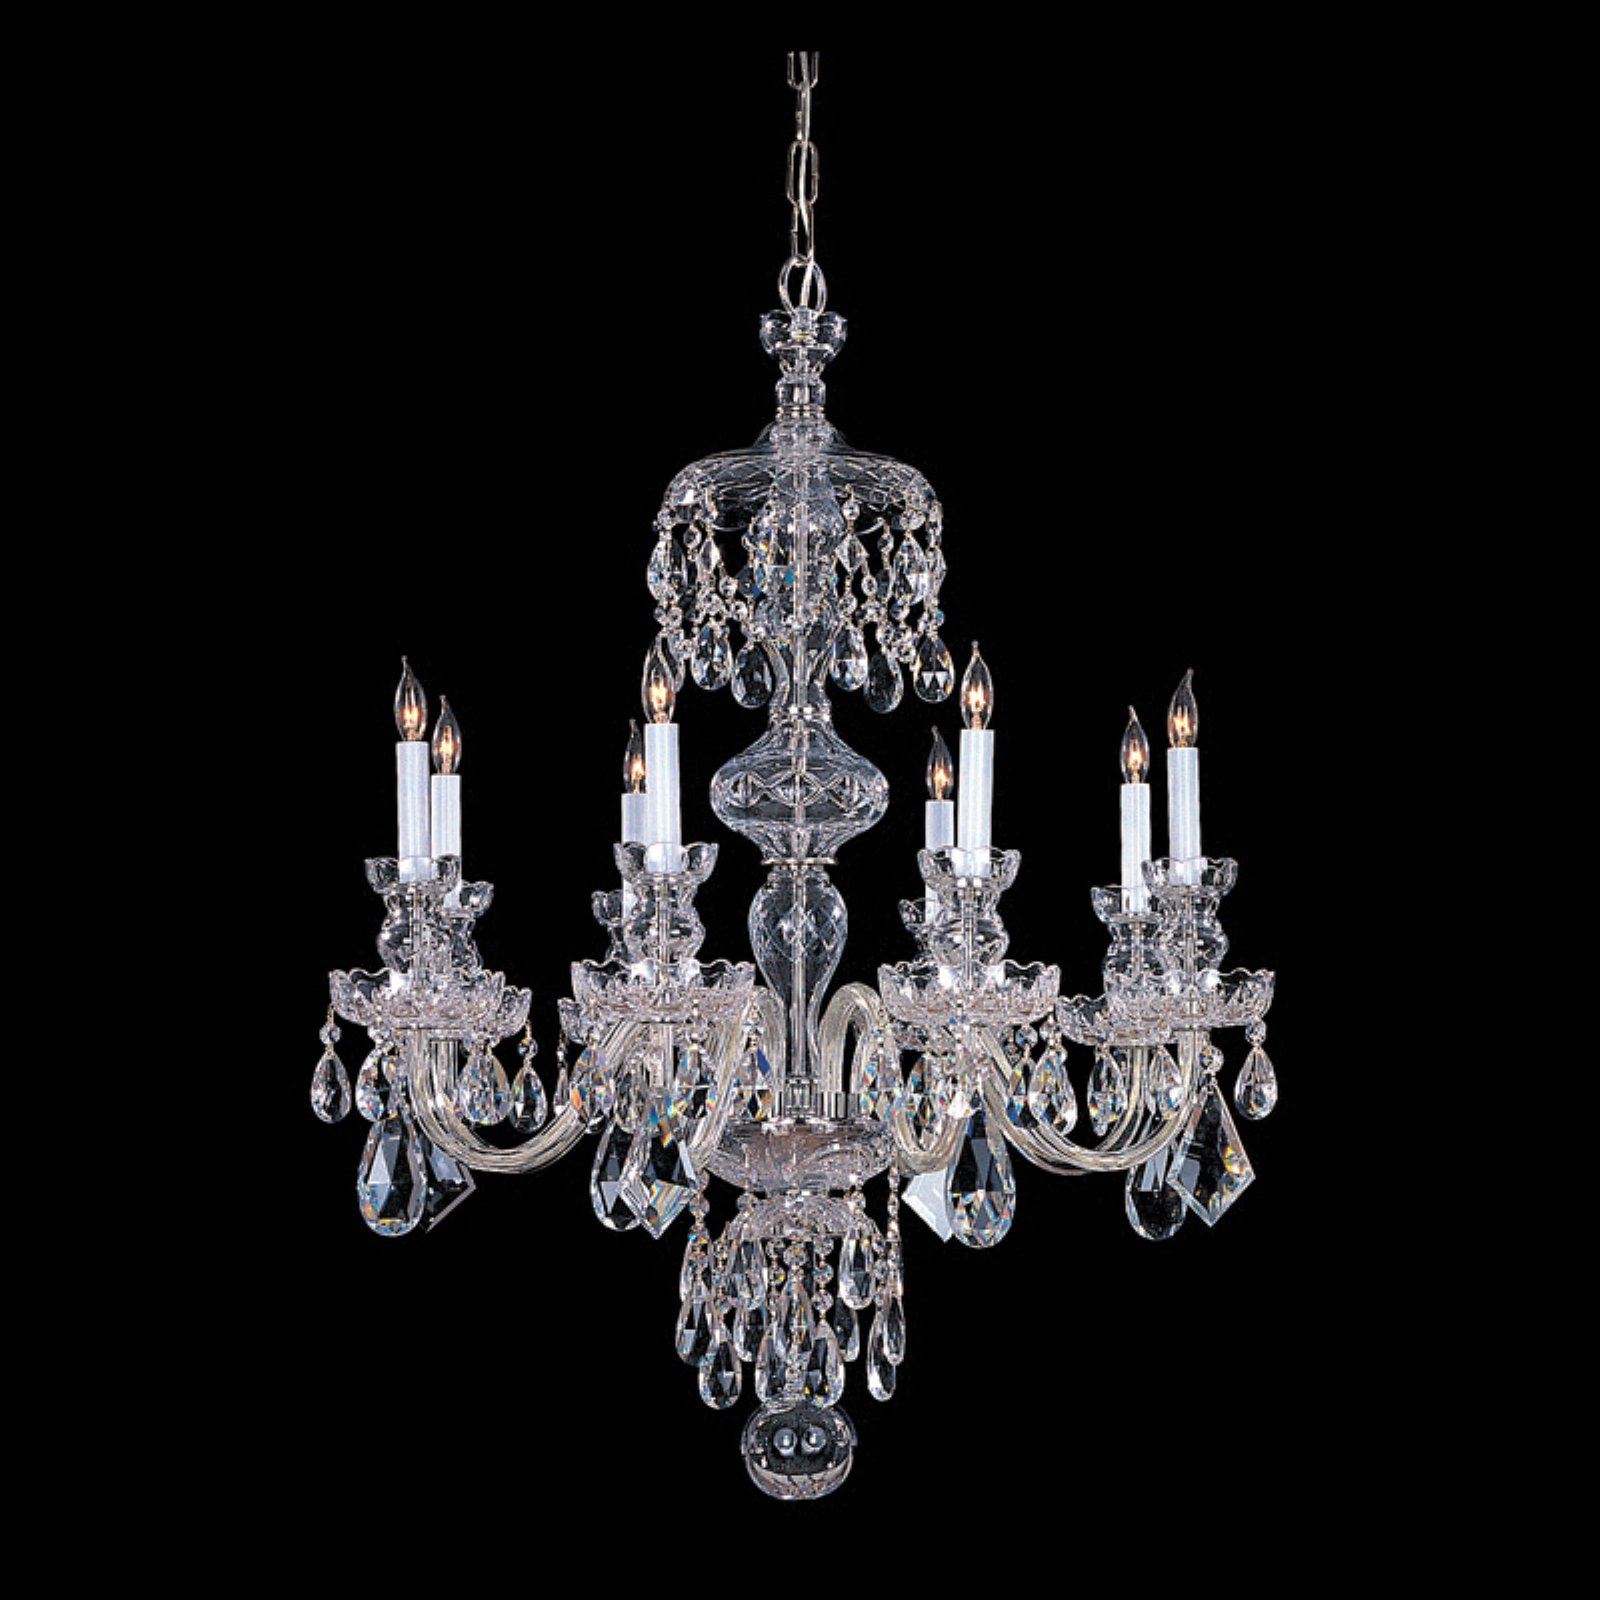 Crystorama 1148-Ch-CL-S Traditional Swarovski Elements Crystal Chandelier 28W in. by Crystorama